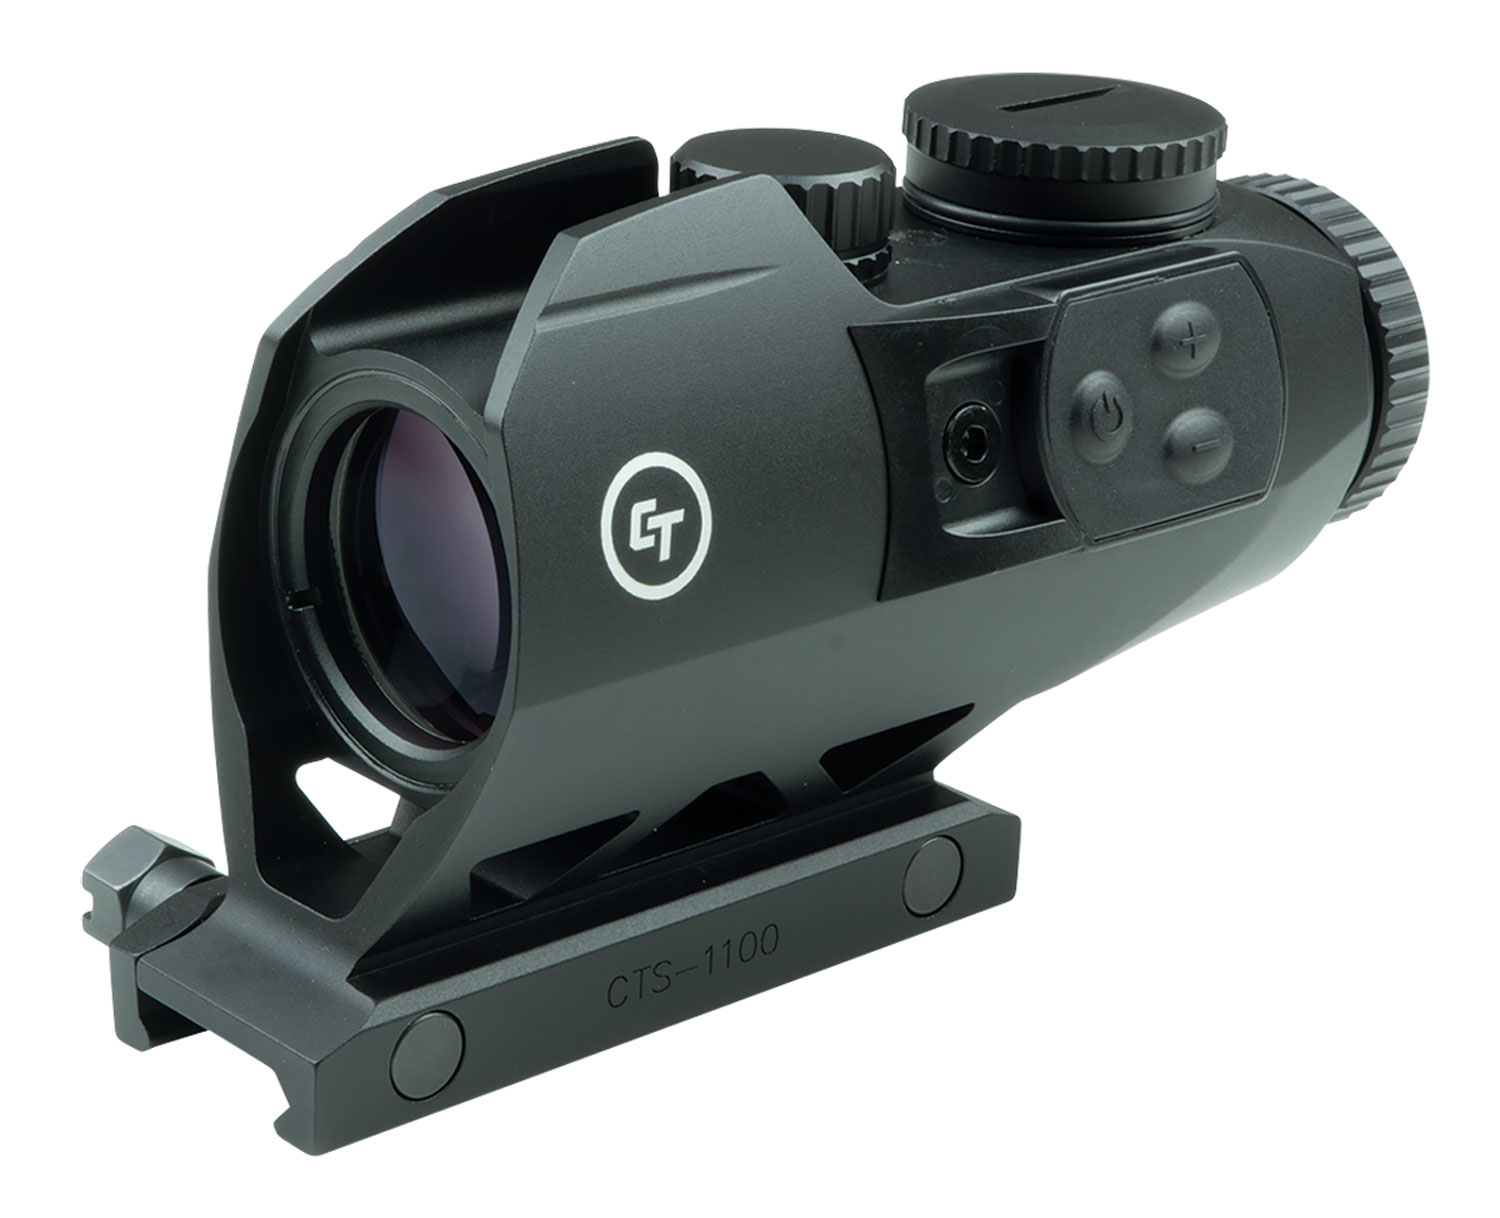 Crimson Trace CTS-1100 3.5x Battlesight with BDC Reticle